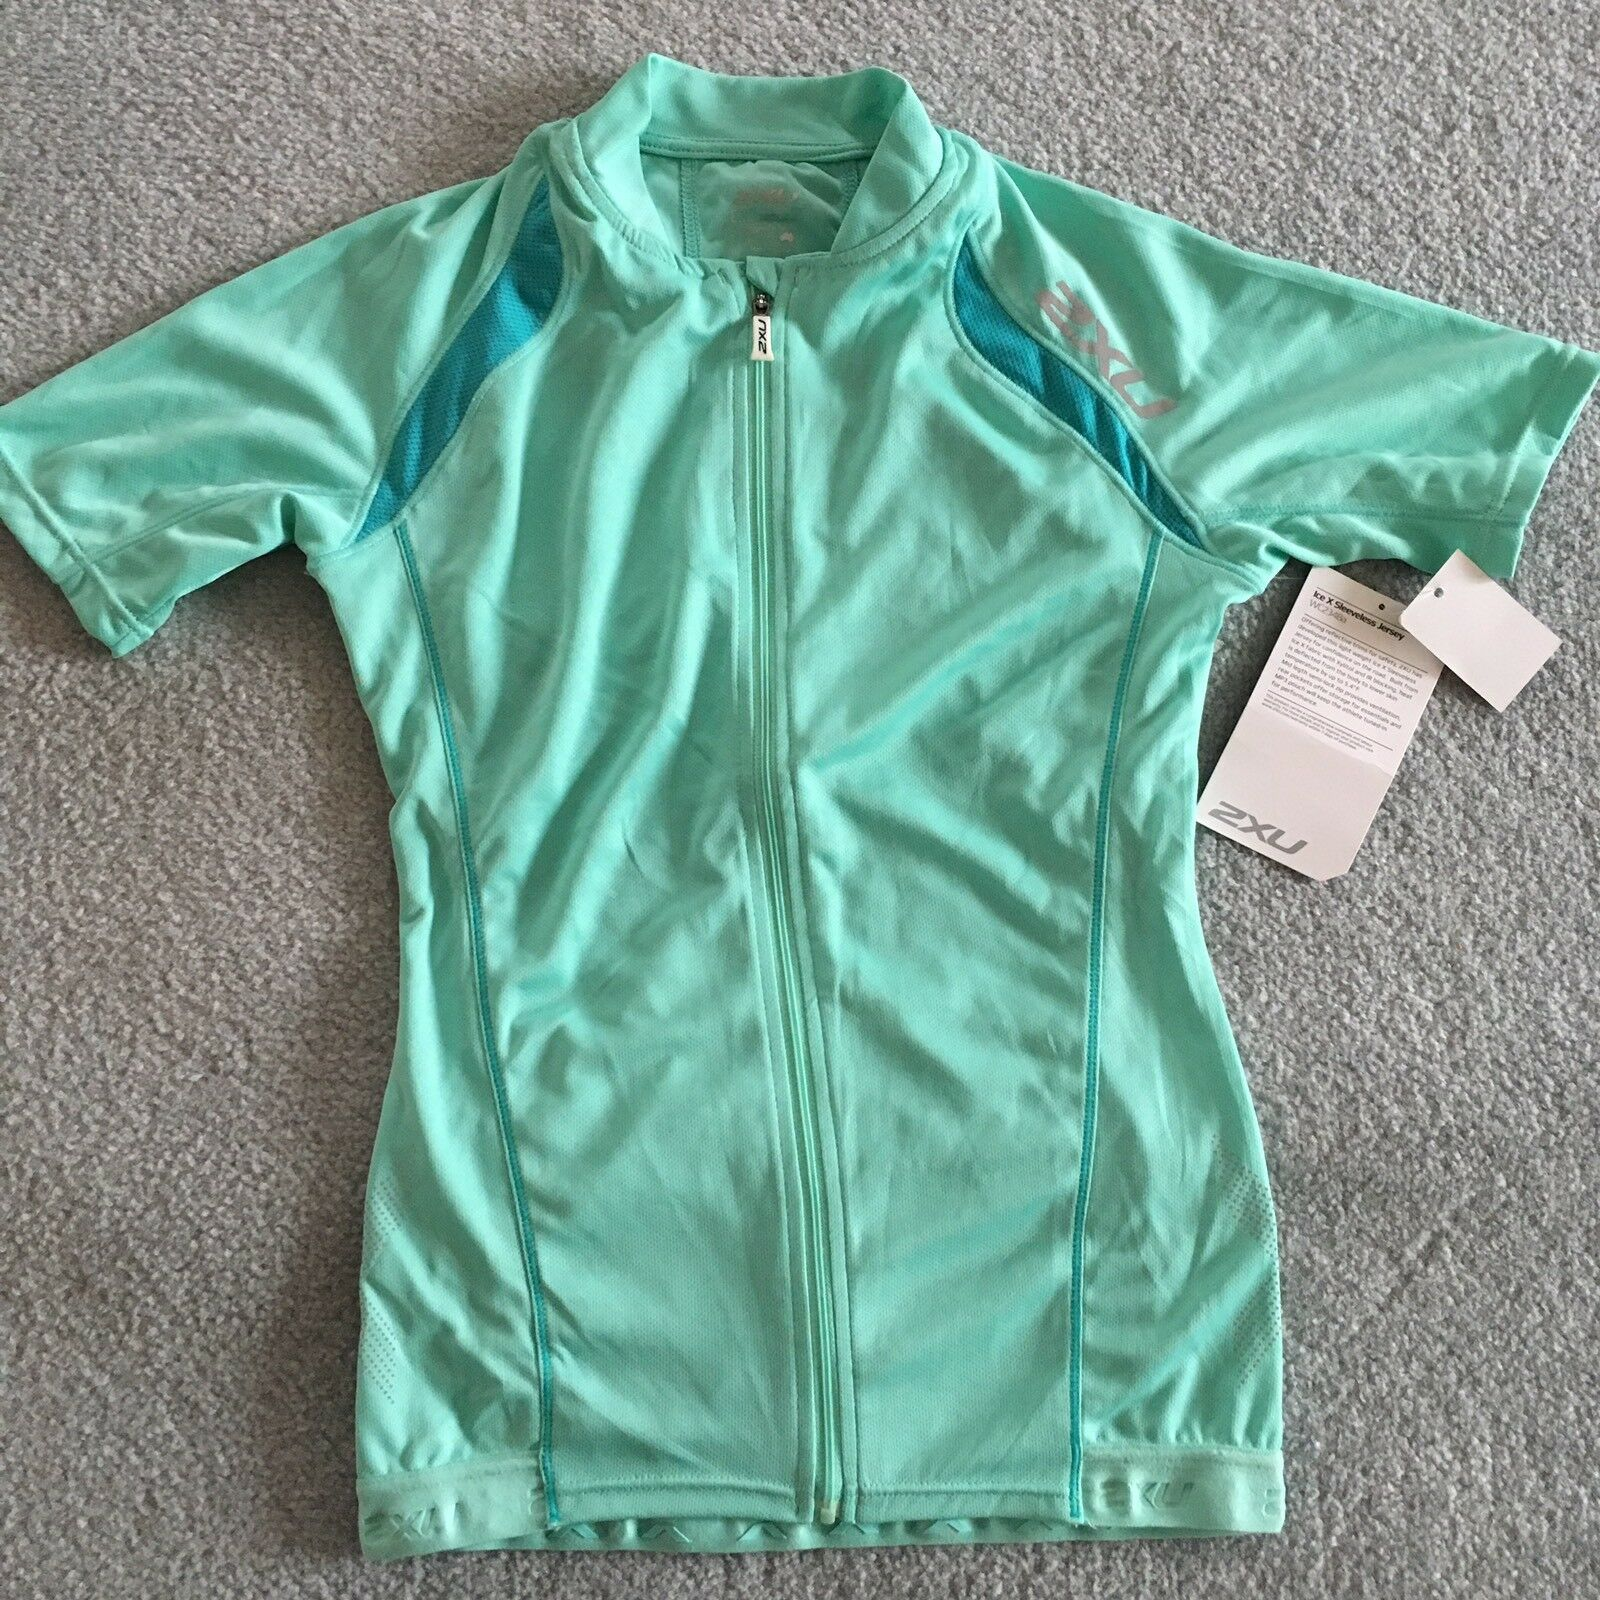 2XU Womens Cycling Ice X Green Mist Jersey - Size Small - RRP  180